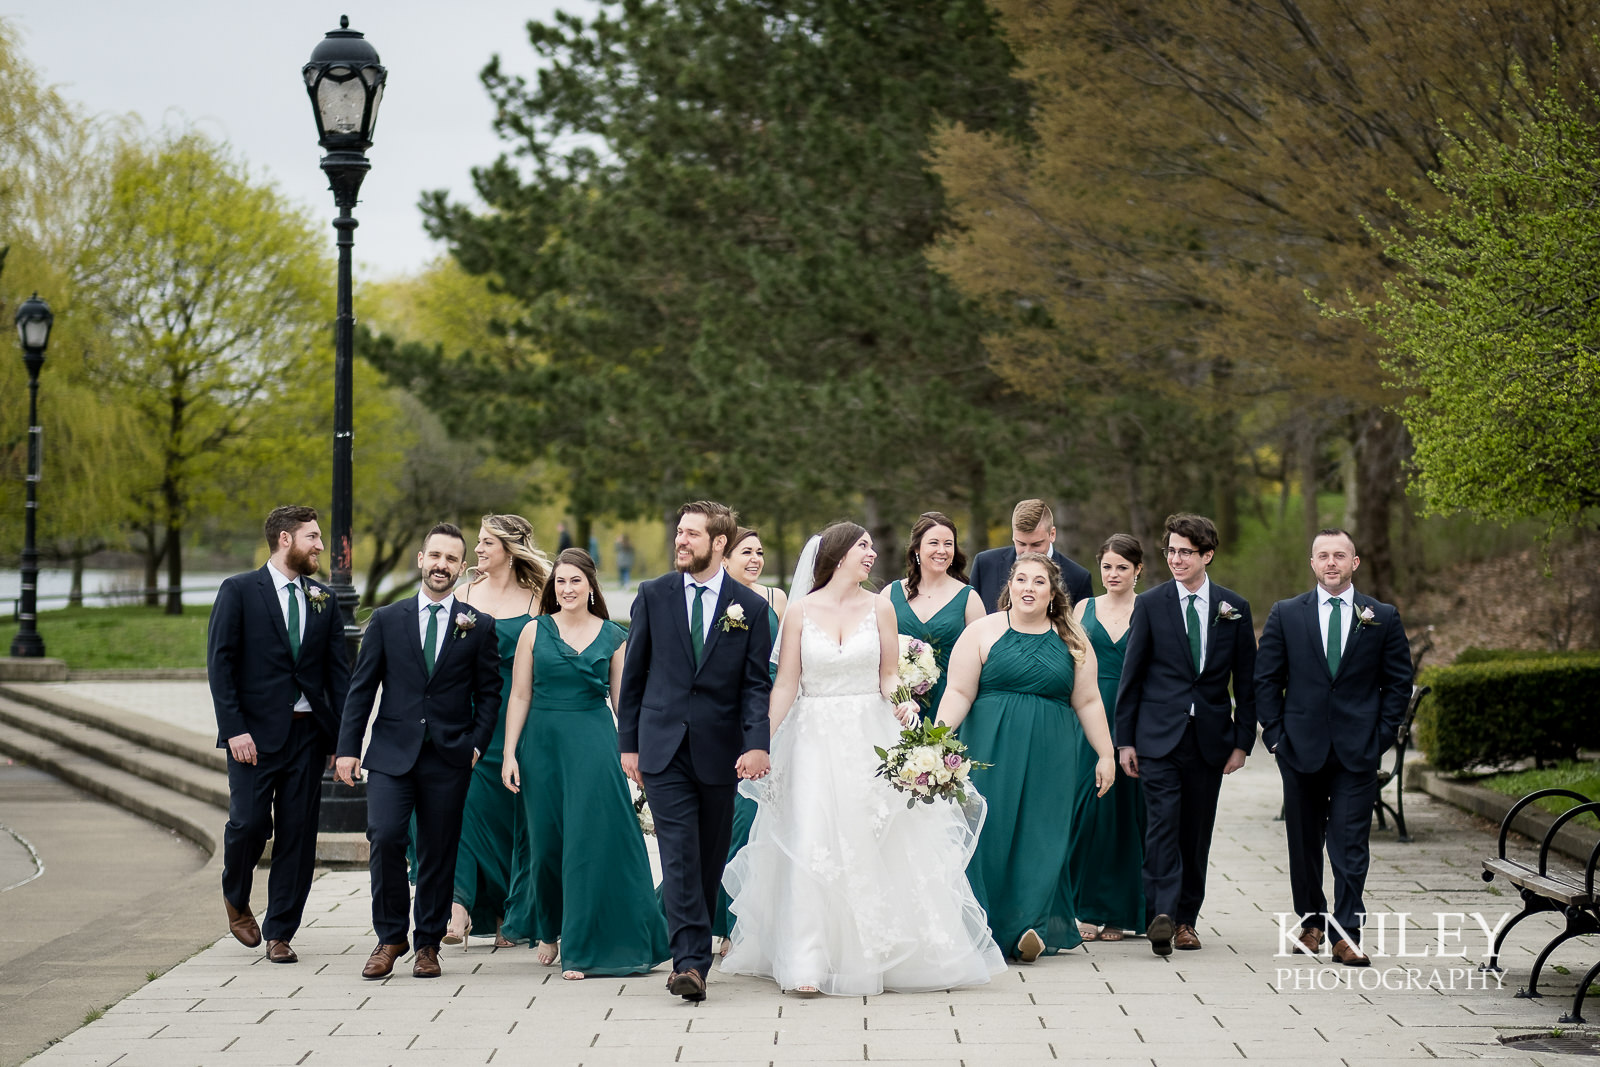 27-Hoyt-Lake-Wedding-Pictures-Buffalo-NY-Kniley-Photography.jpg